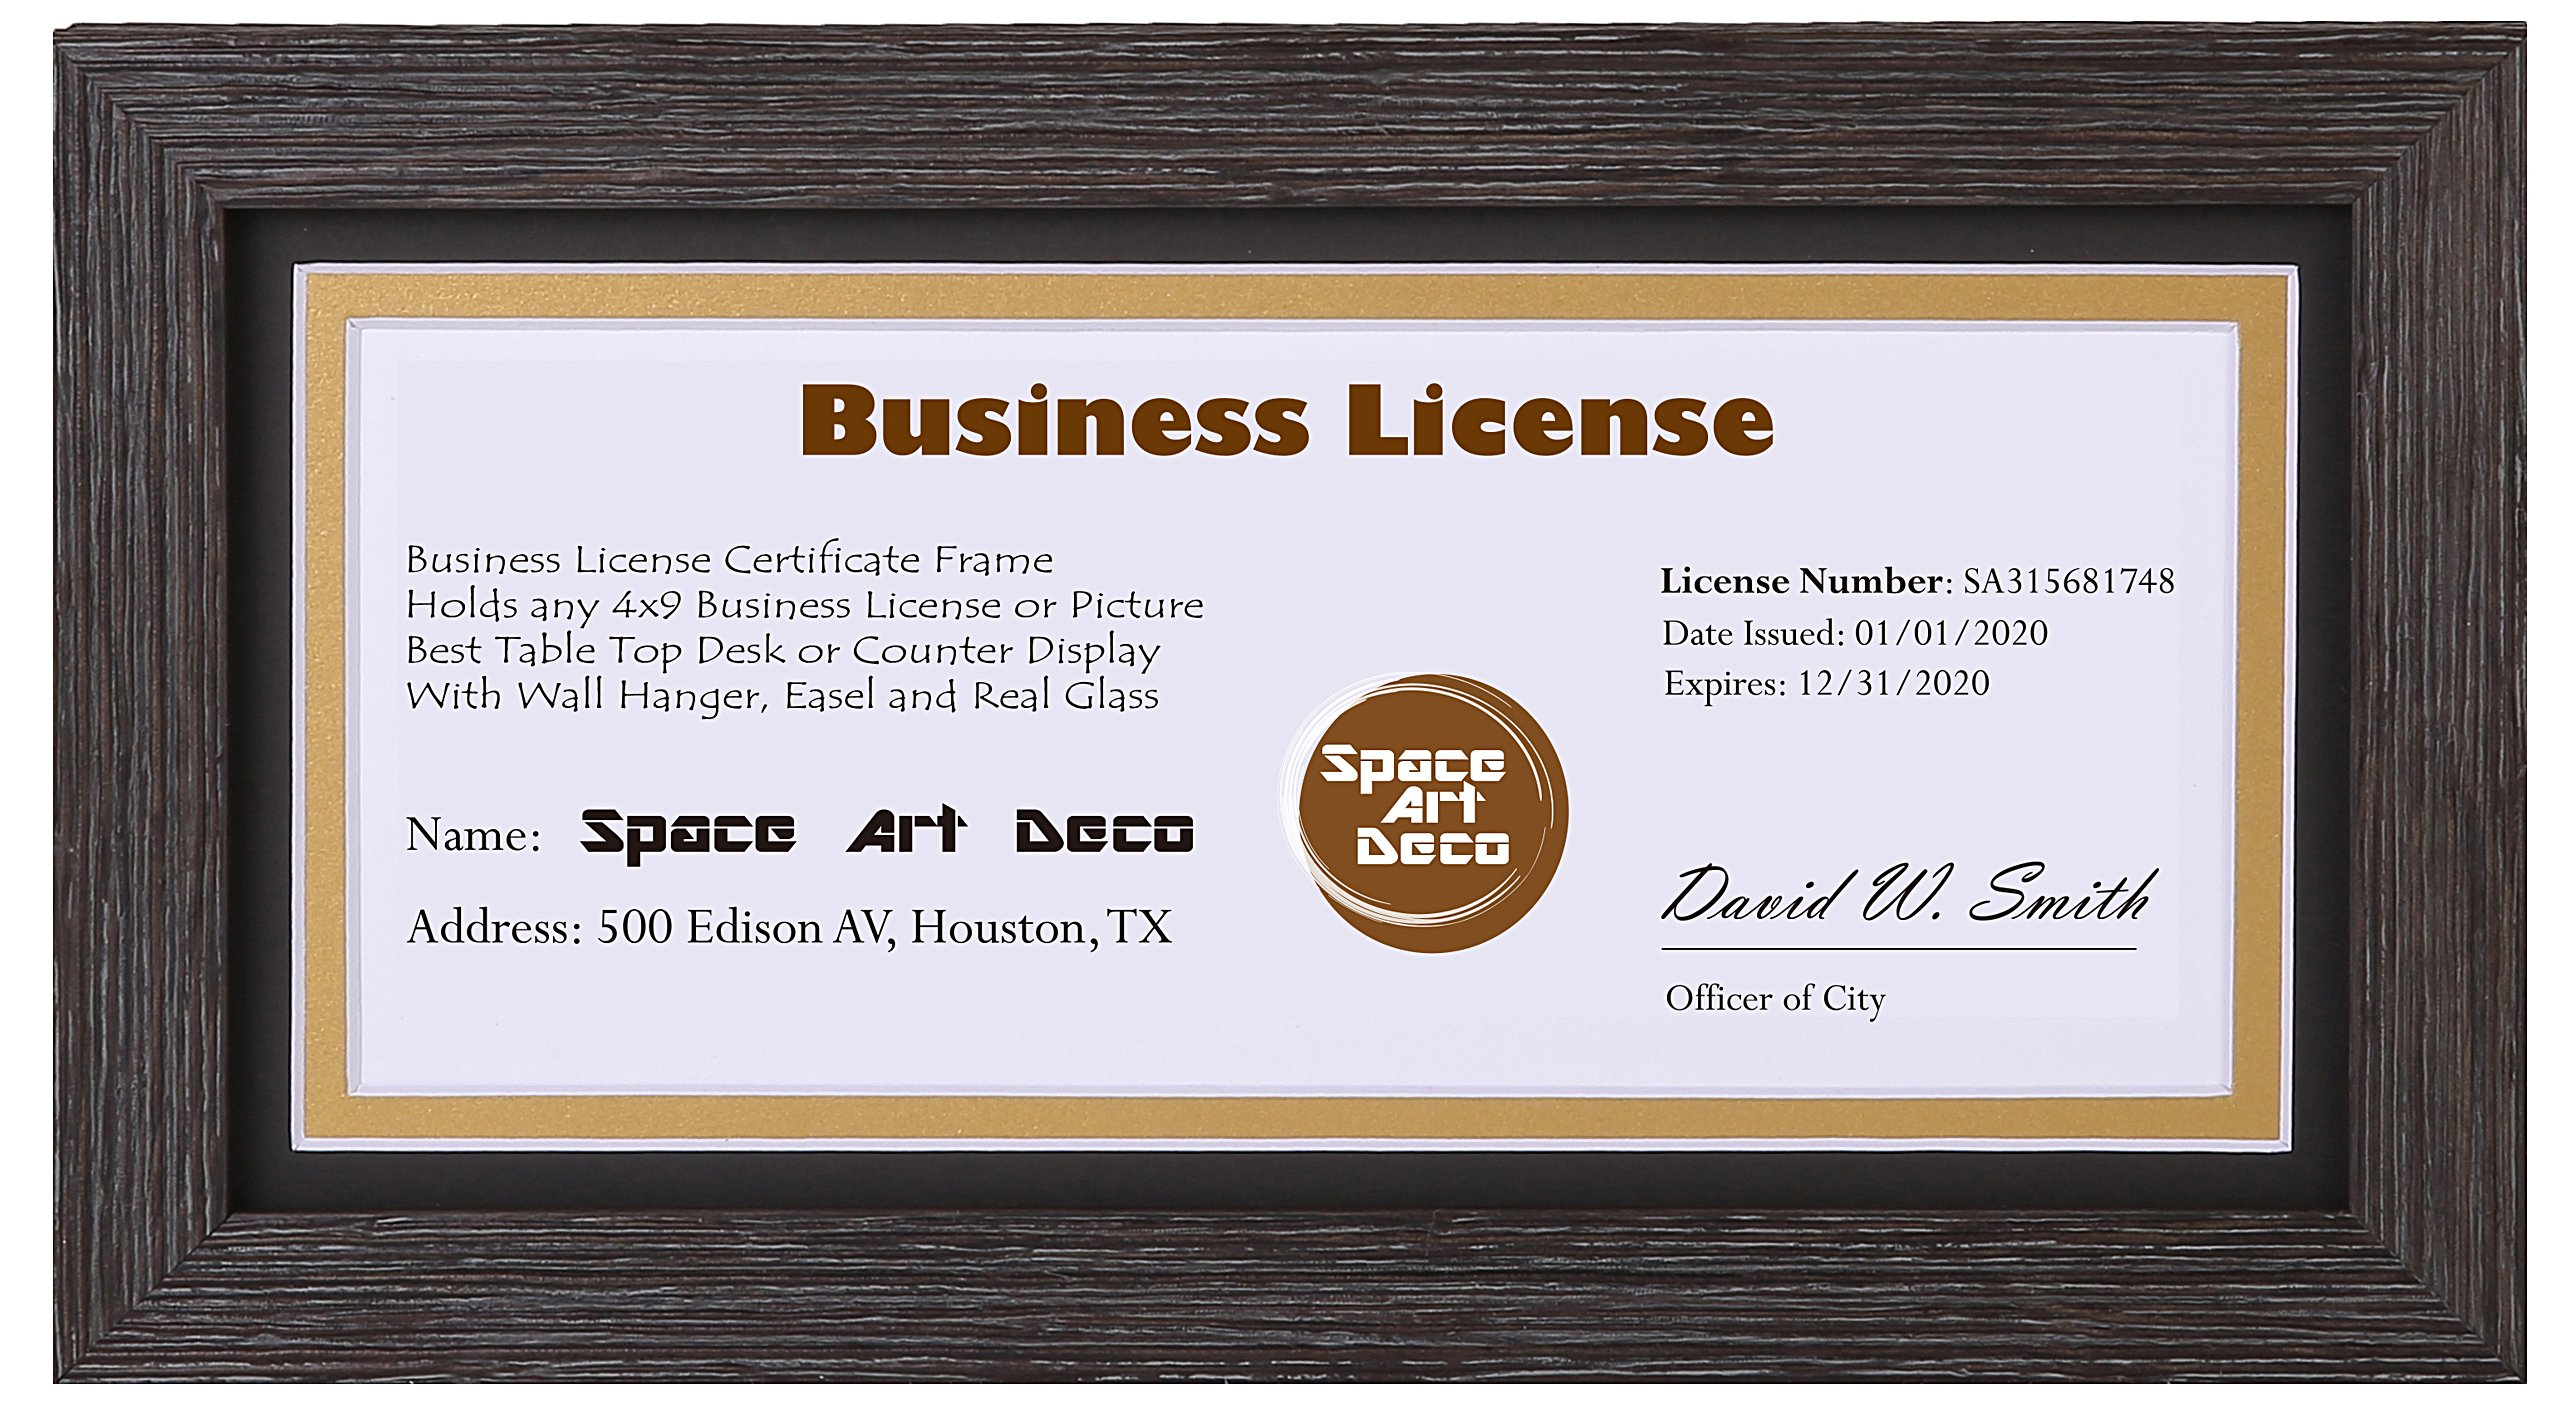 Space Art Deco 5x10 Dark Brown Textured Frame - Black over Gold Double Mat - For 4x9 Business License and Certificates - Easel Stand - D-Ring Hangers - Desk/Table Top Display - Glass